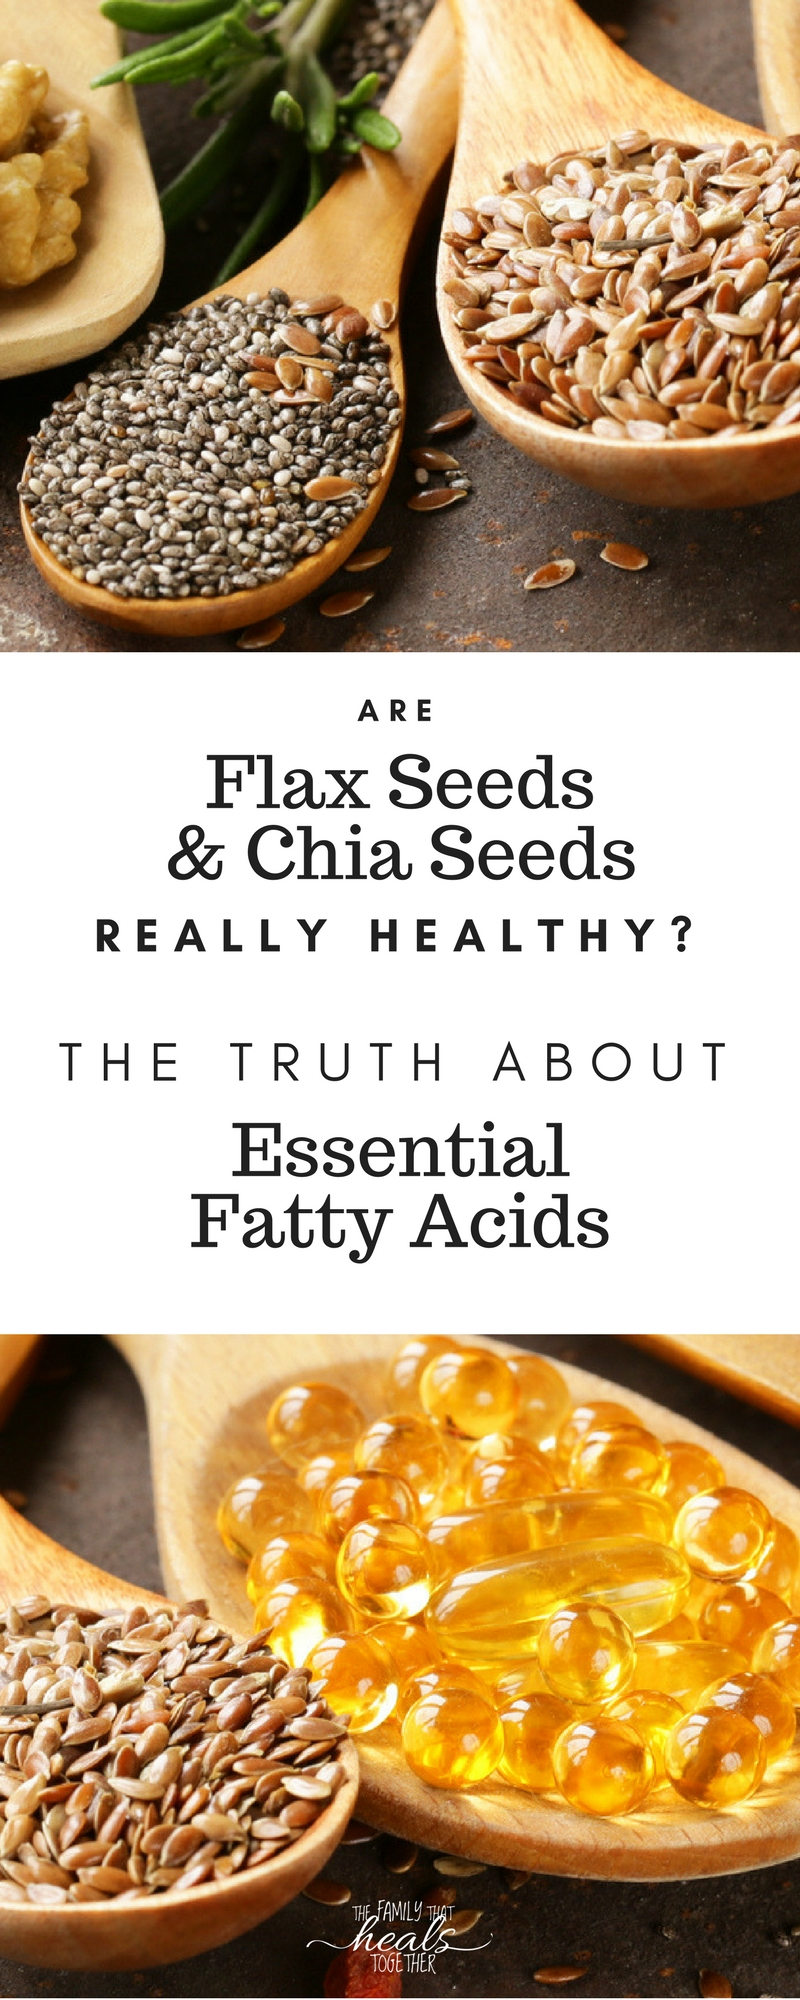 Chia seeds and flax seeds are part of a healthy diet, but are they a good source of essential fatty acids? You may be surprised by the answer! Learn the truth from The Family That Heals Together.